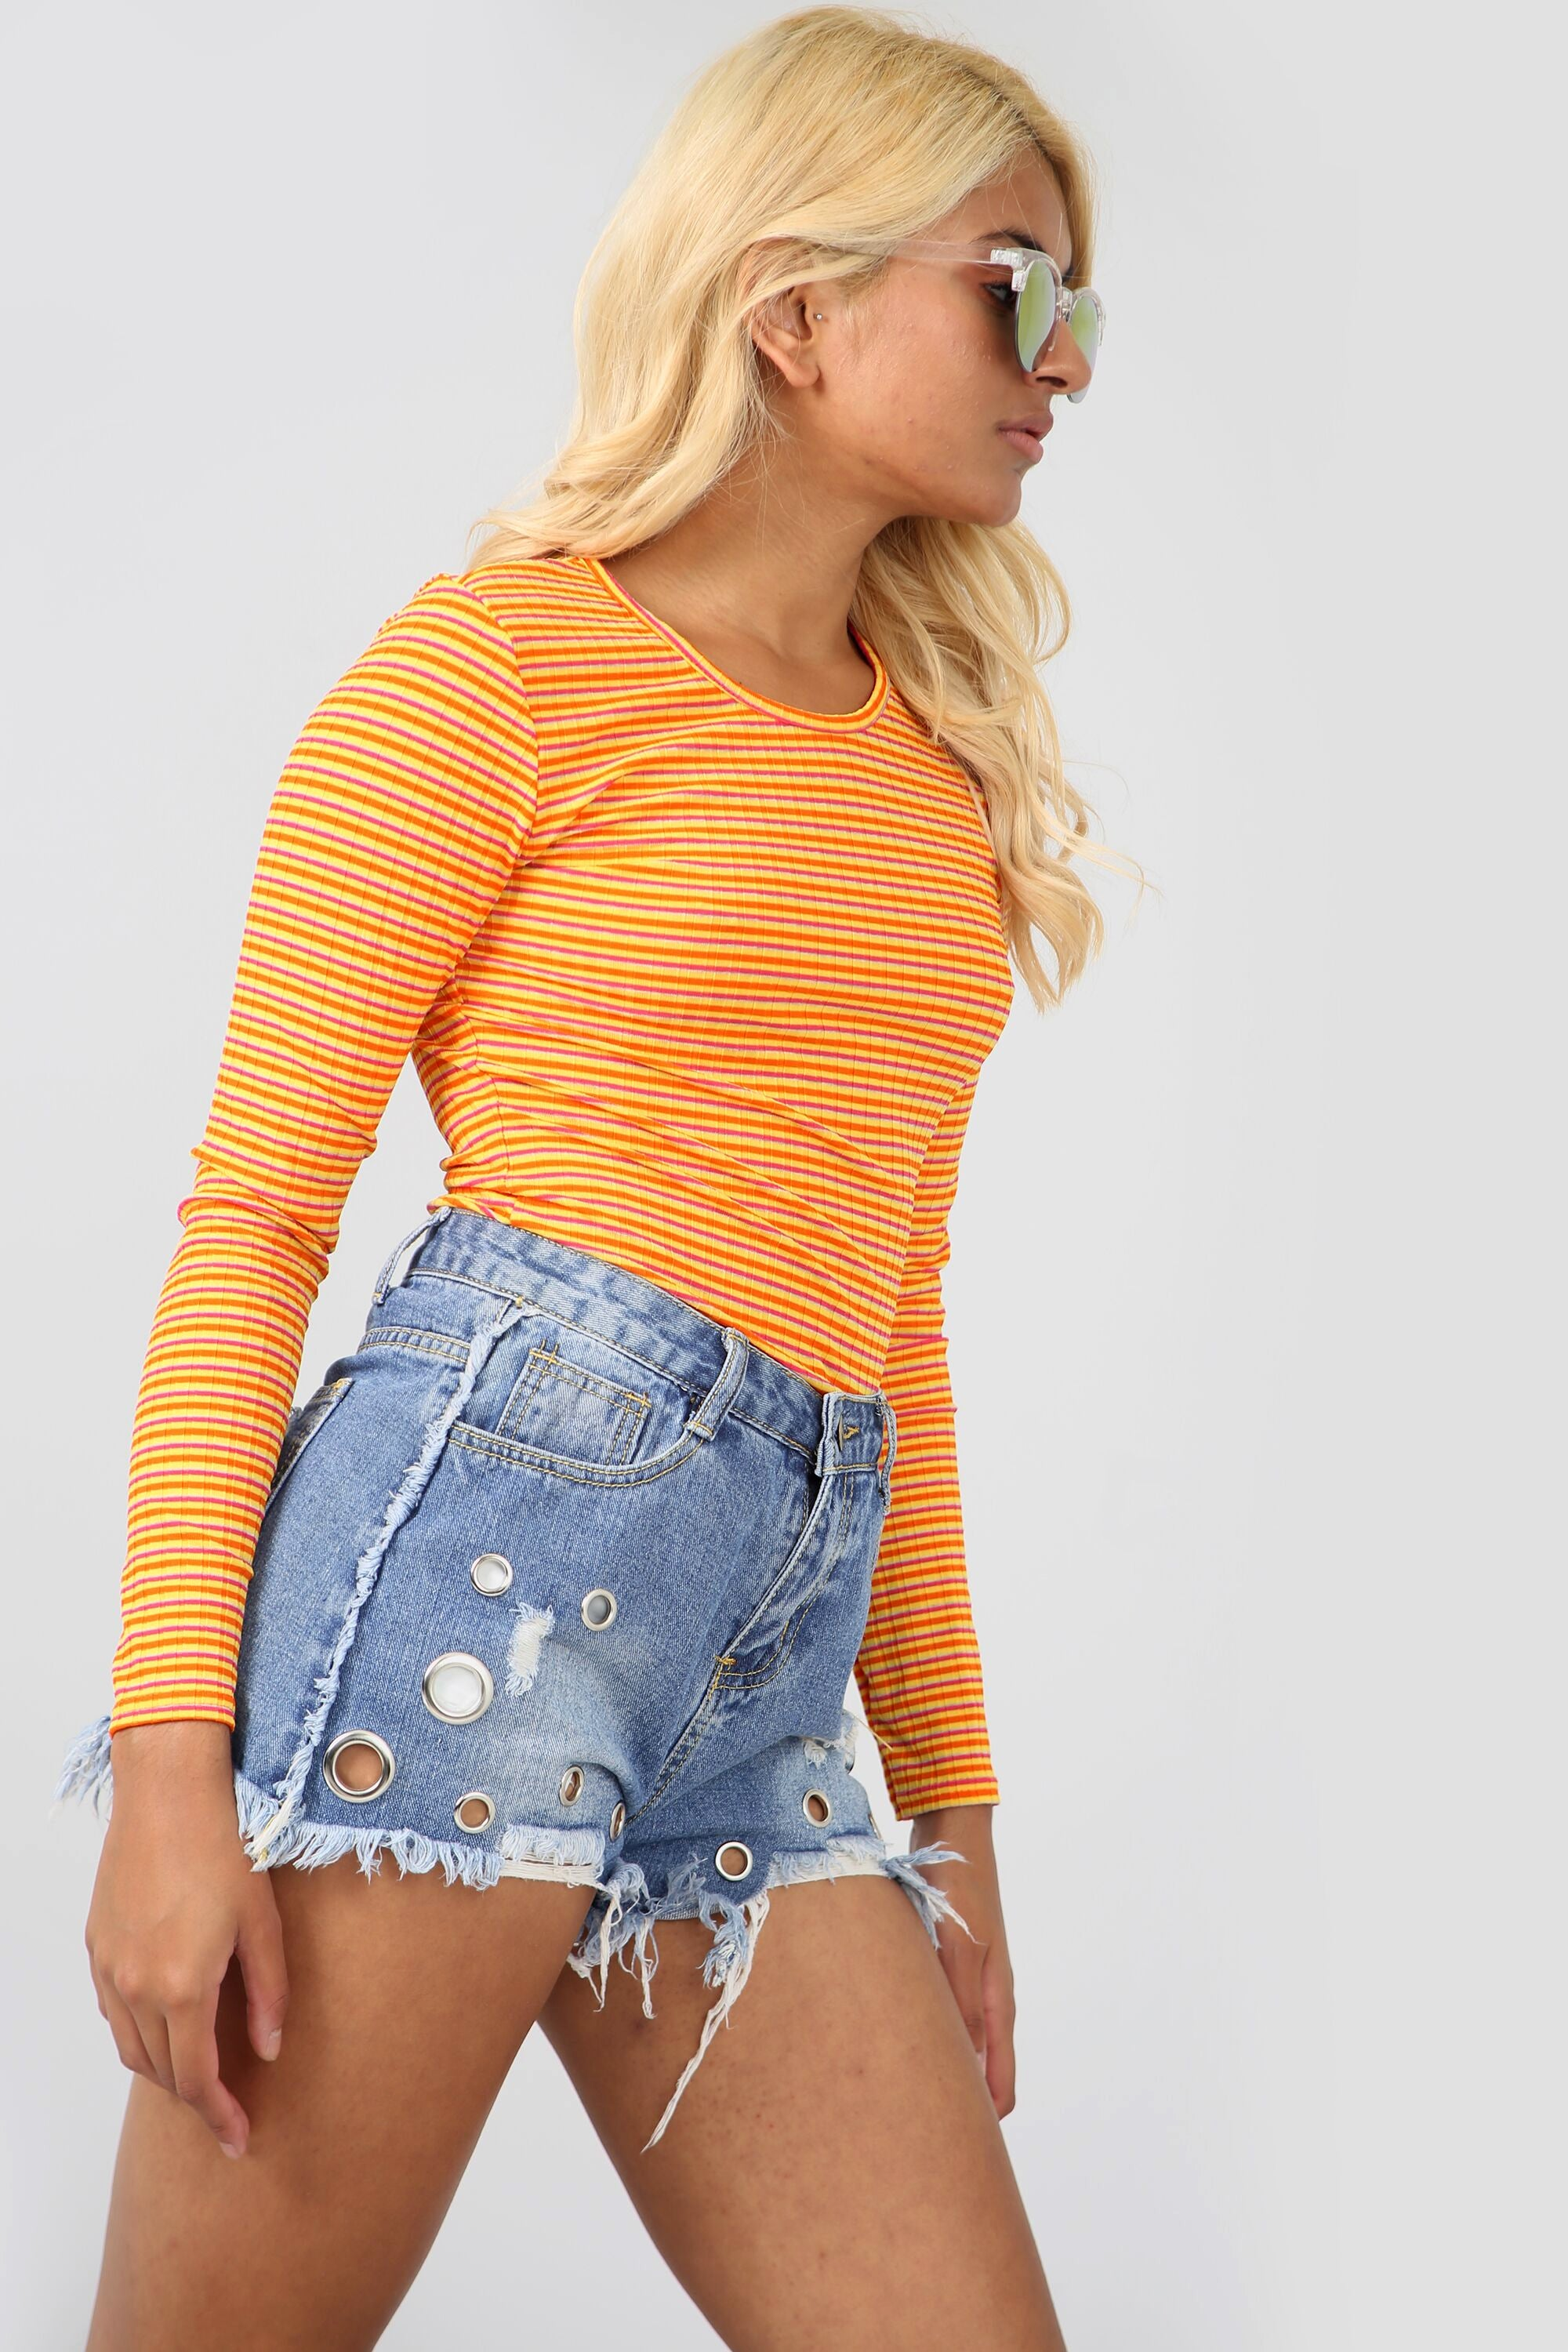 Long Sleeve High Neck Orange Striped Bodysuit - bejealous-com